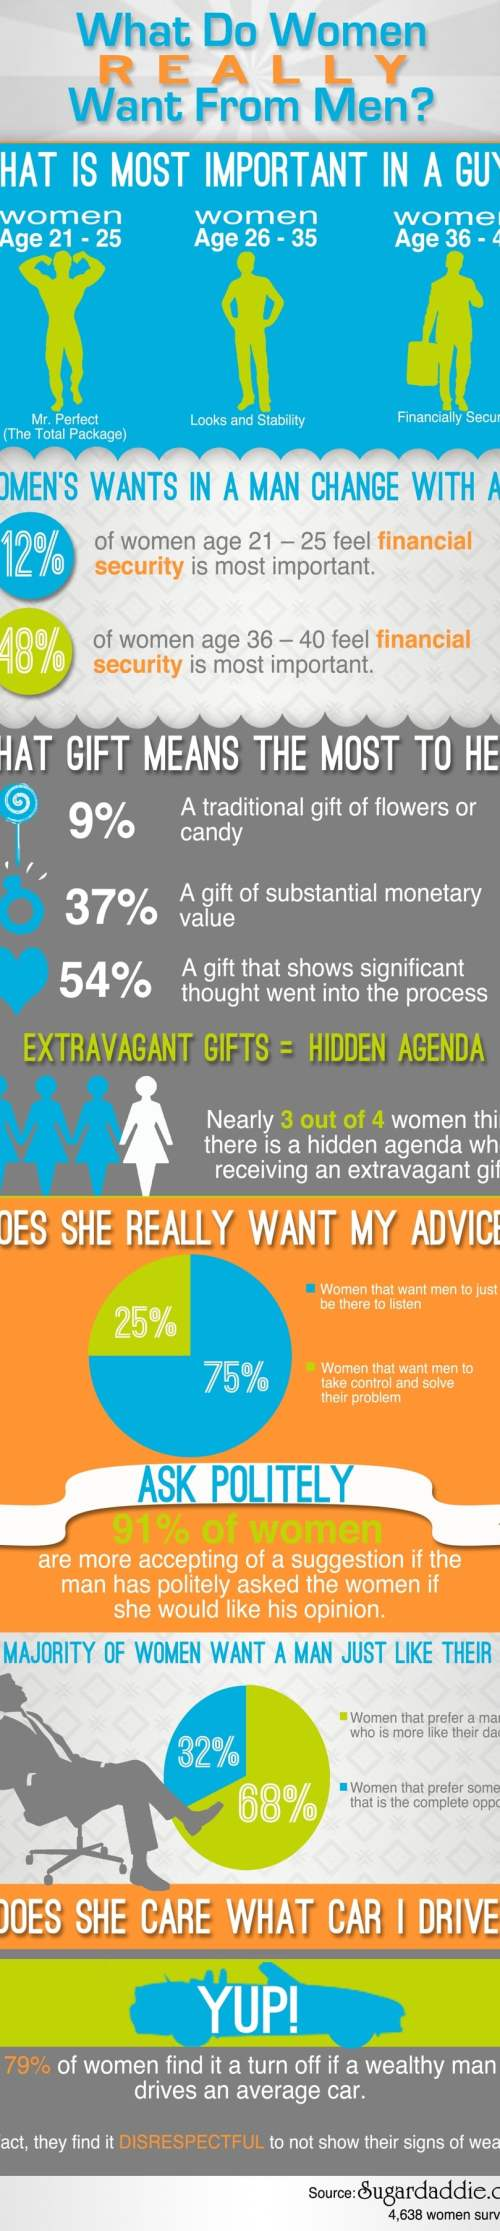 What Do Women Really Want From Men - Infographic